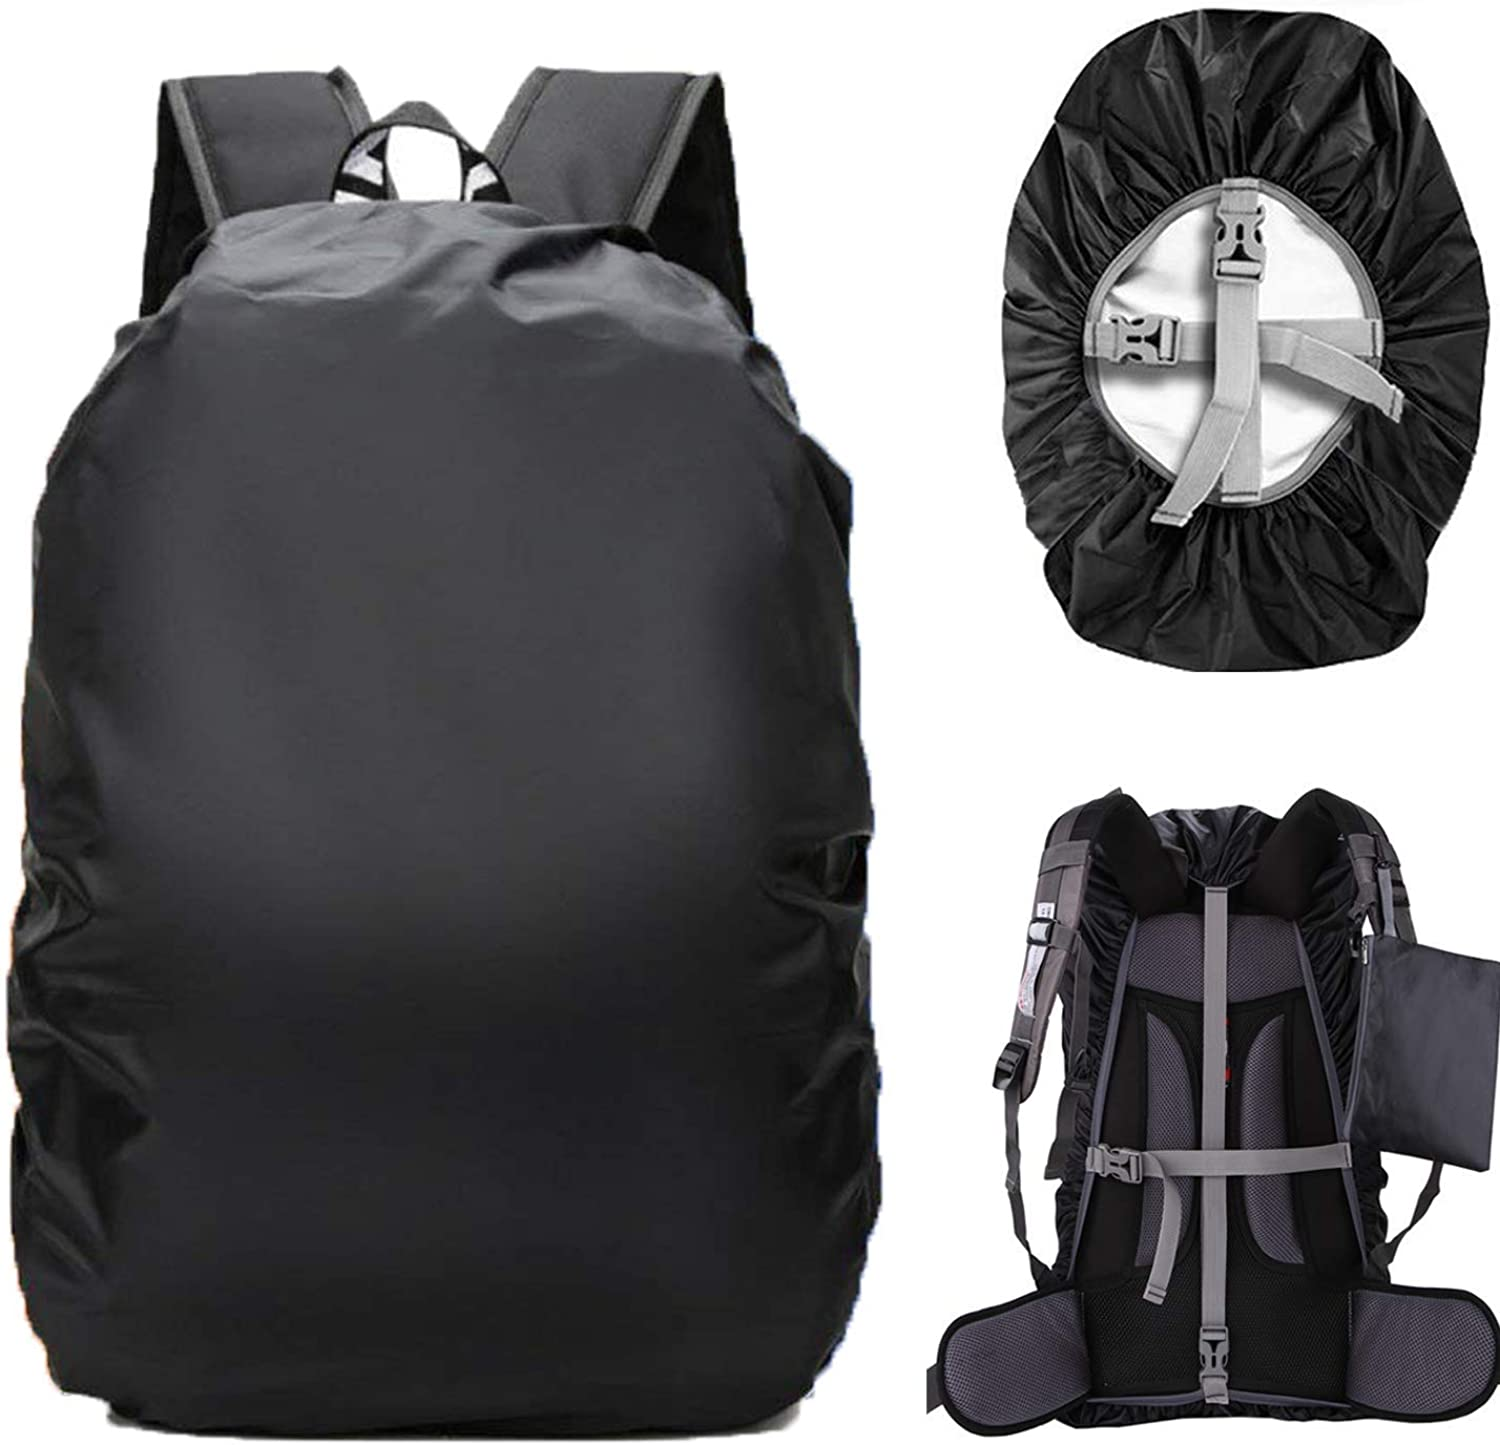 4055L Ultralight Backpack Rain Cover with Stored Bag & Survival Whistle, for Camping,Hiking,Cycling Black